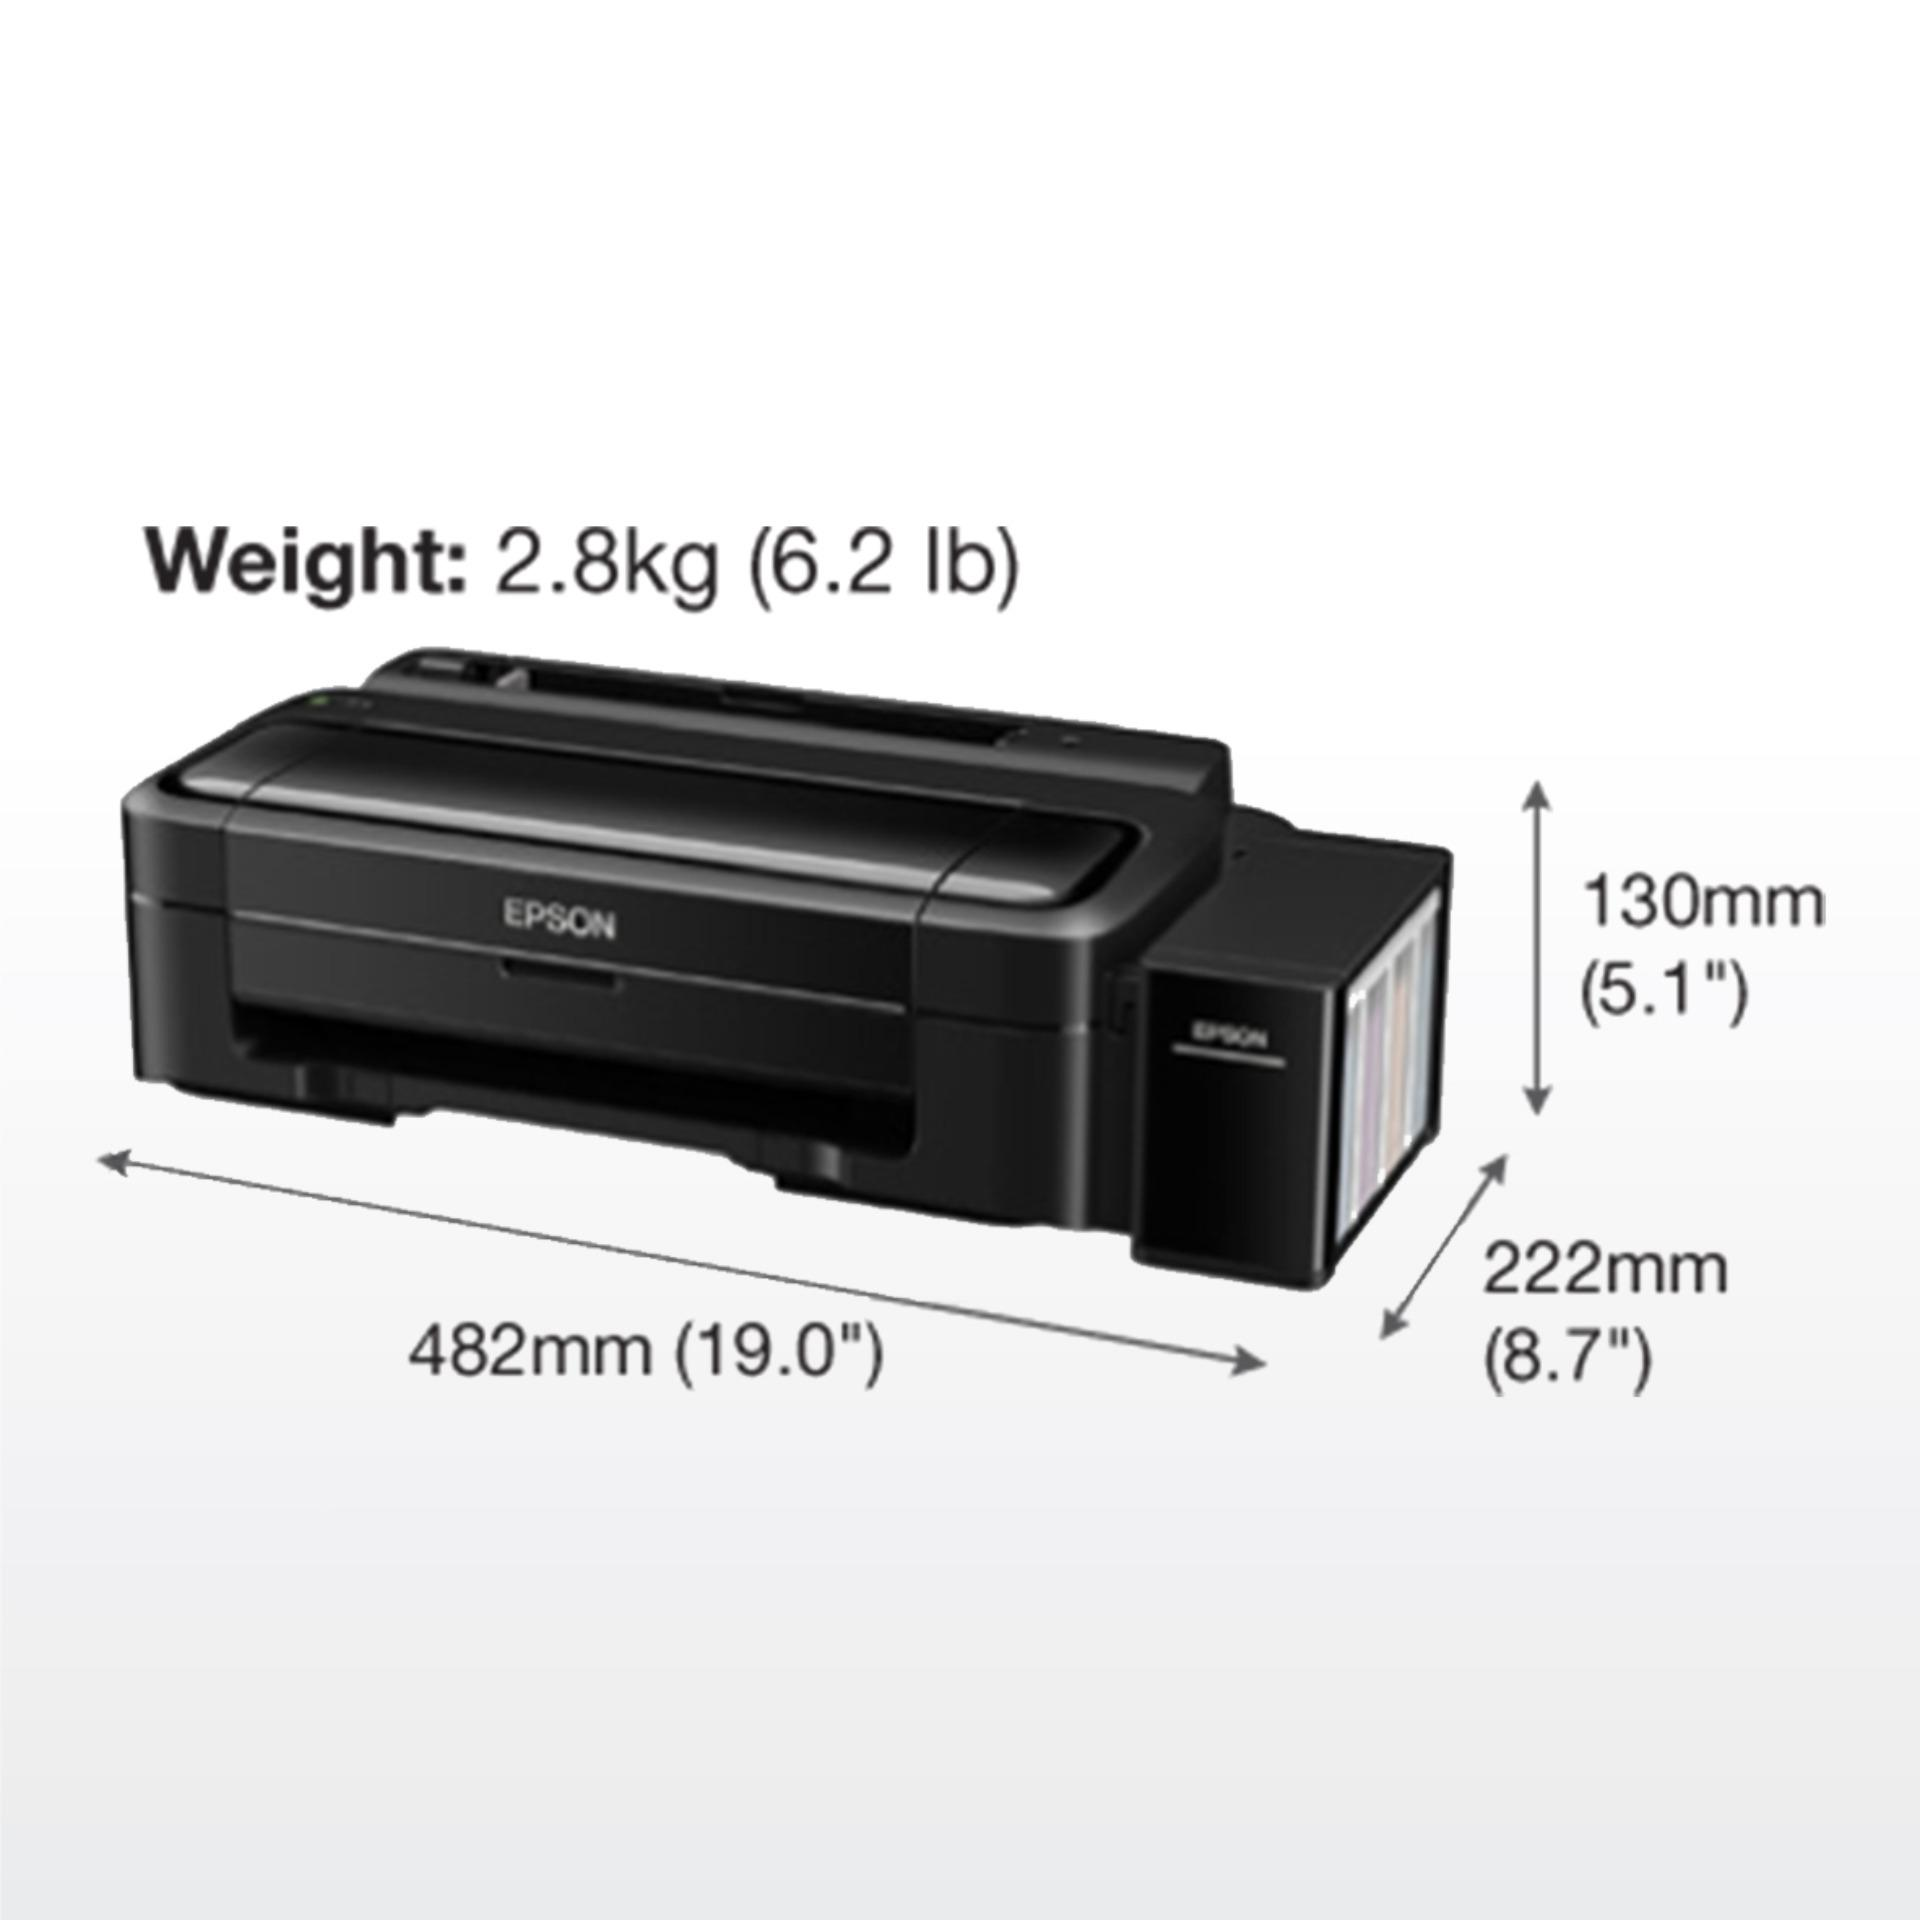 Detail Gambar Printer Epson L310 Ink Tank Original Terbaru